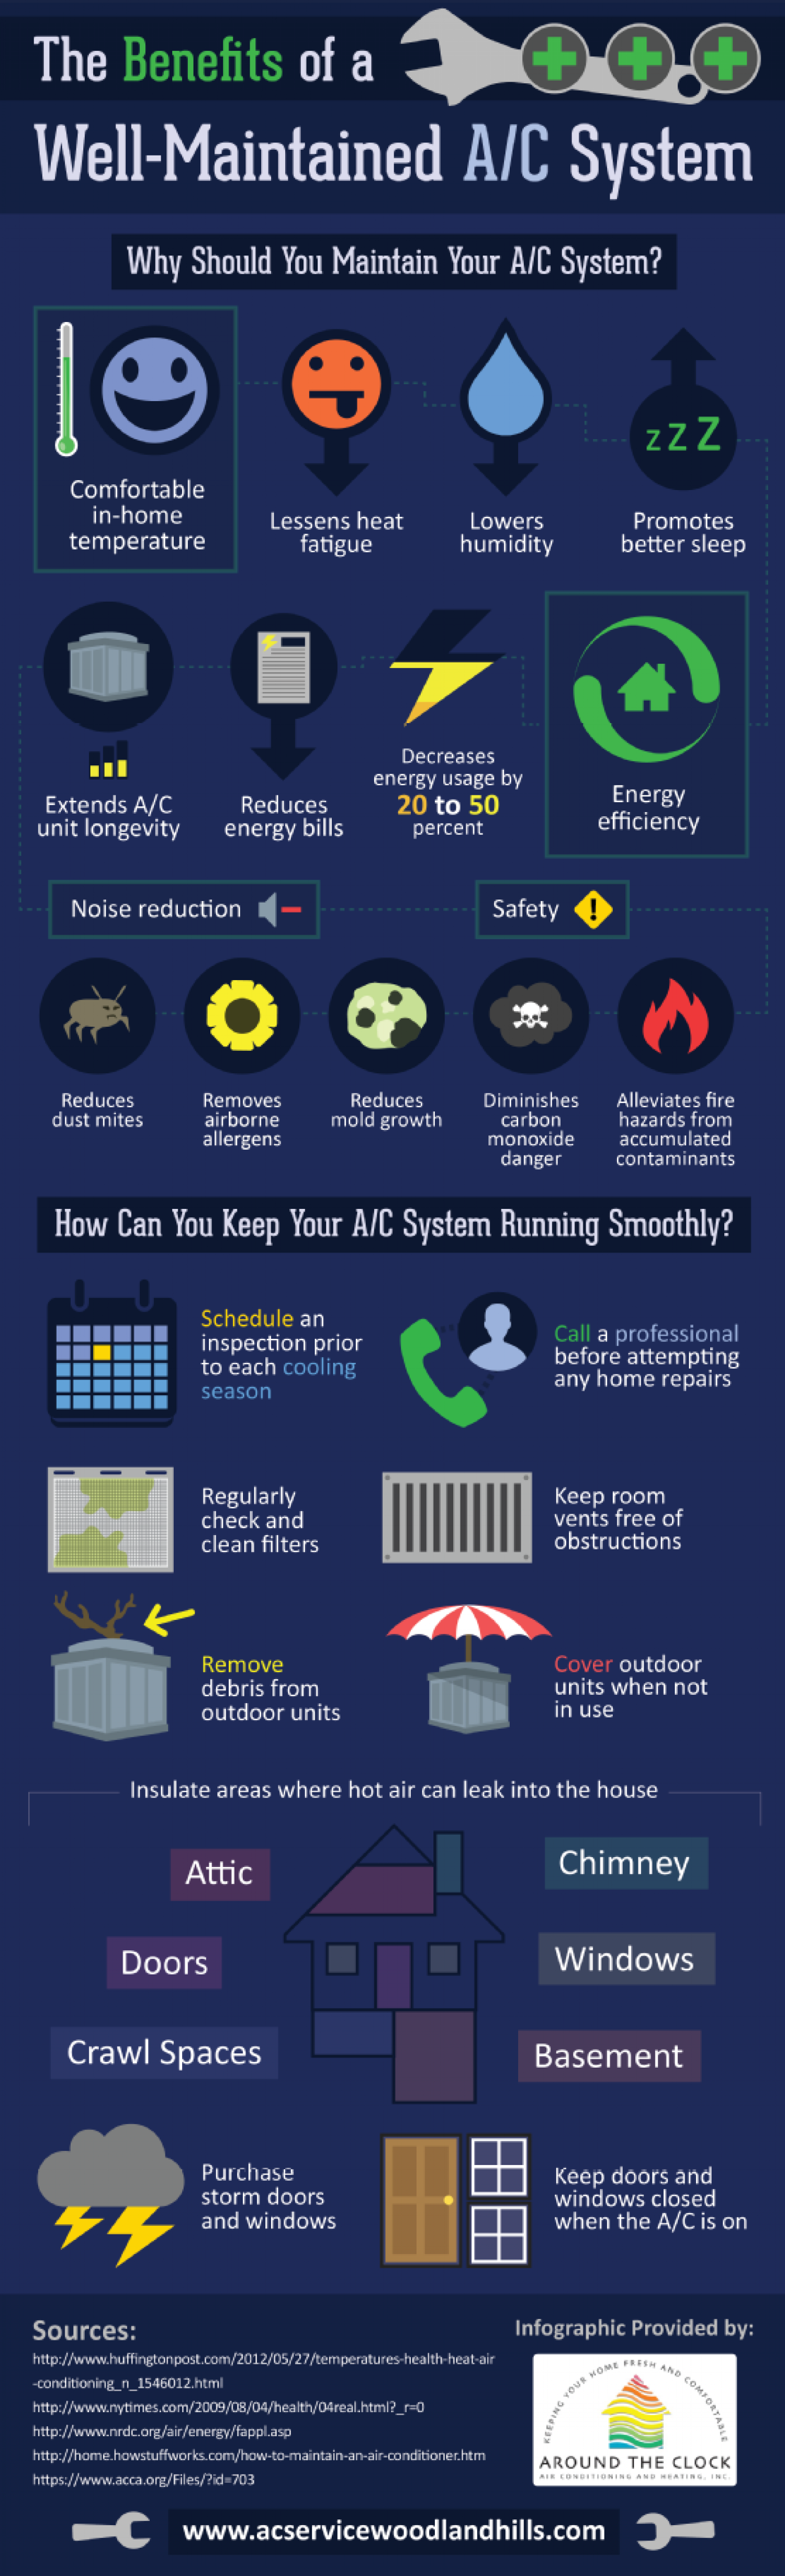 The Benefits of a Well-Maintained A/C System Infographic